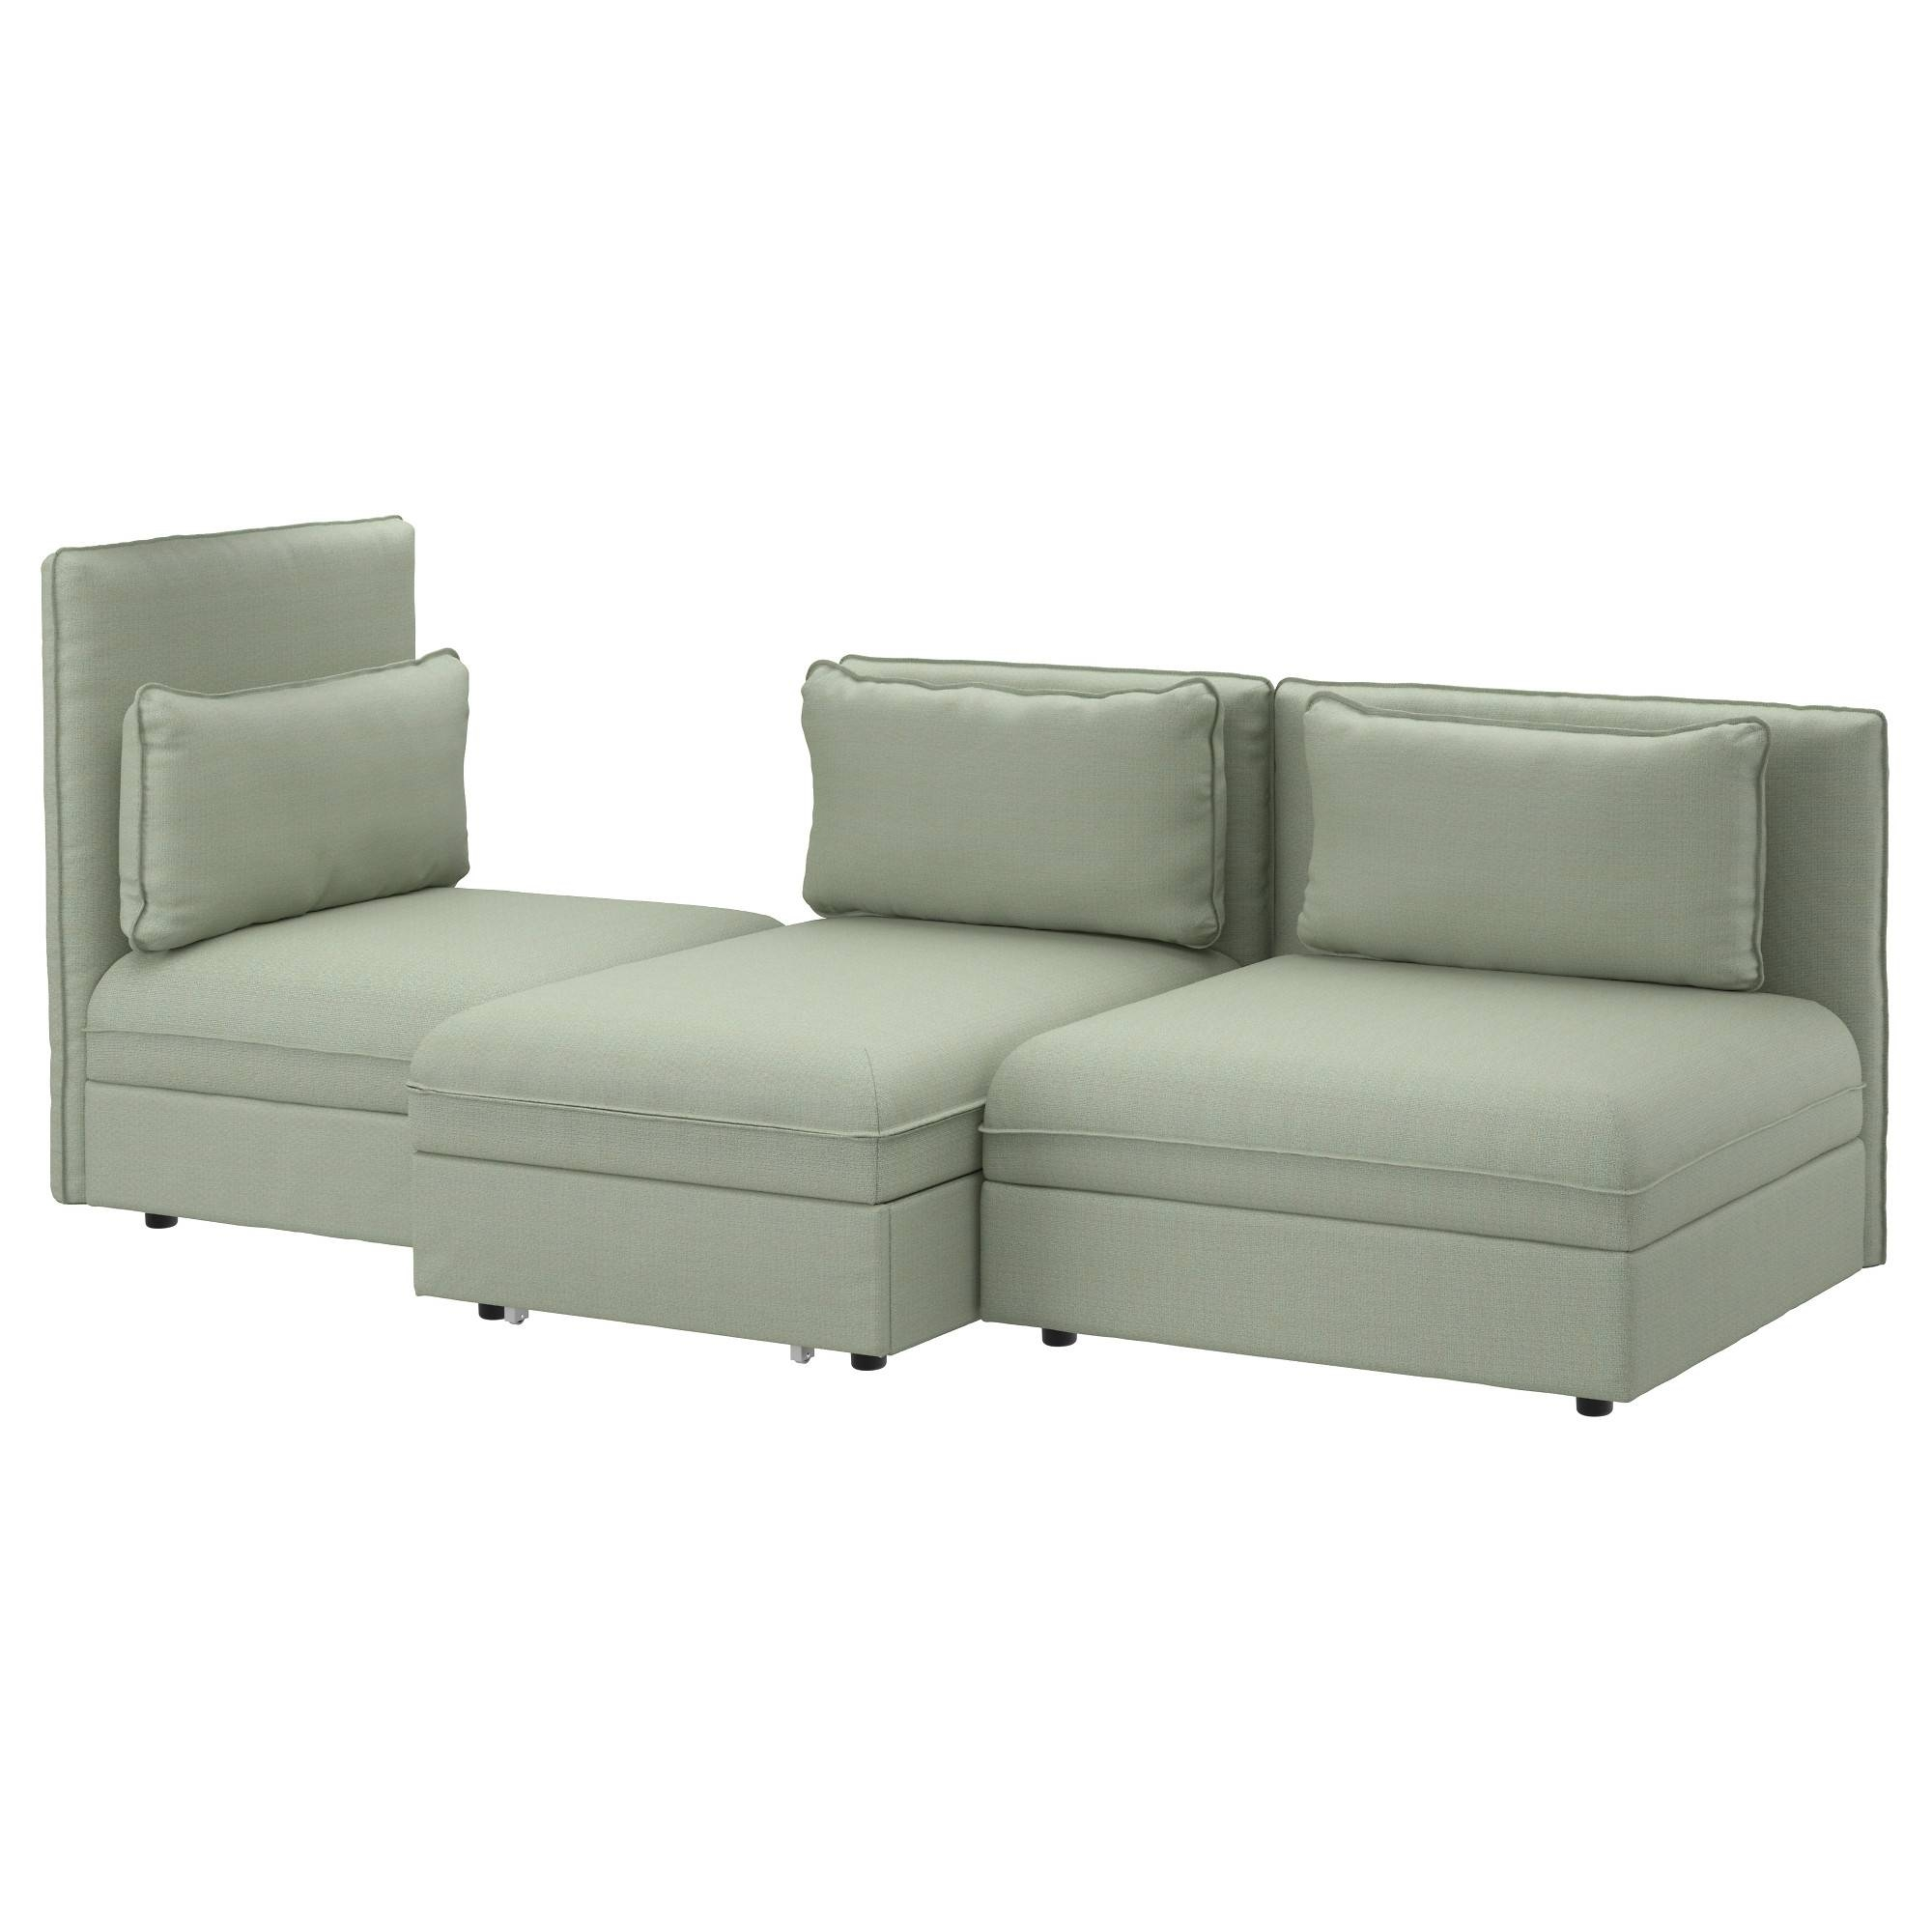 Furniture: Ikea Sofa Beds | Sofa With Pull Out Bed Ikea | Ikea with regard to Cheap Corner Sofa Bed (Image 12 of 30)